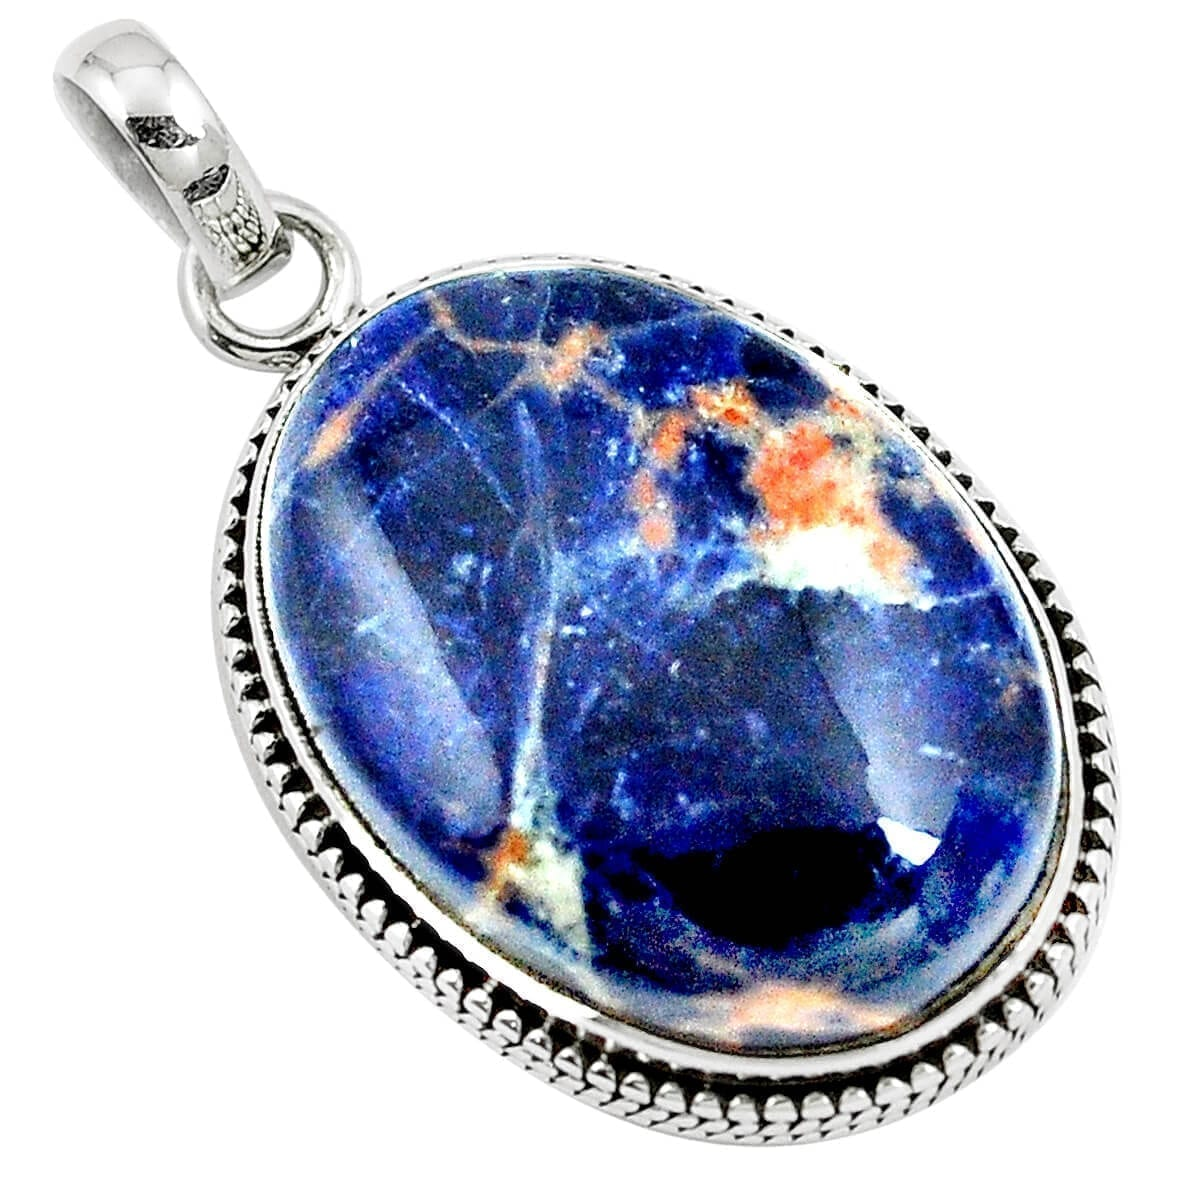 Sunset Sodalite Pendant 8.6 grams